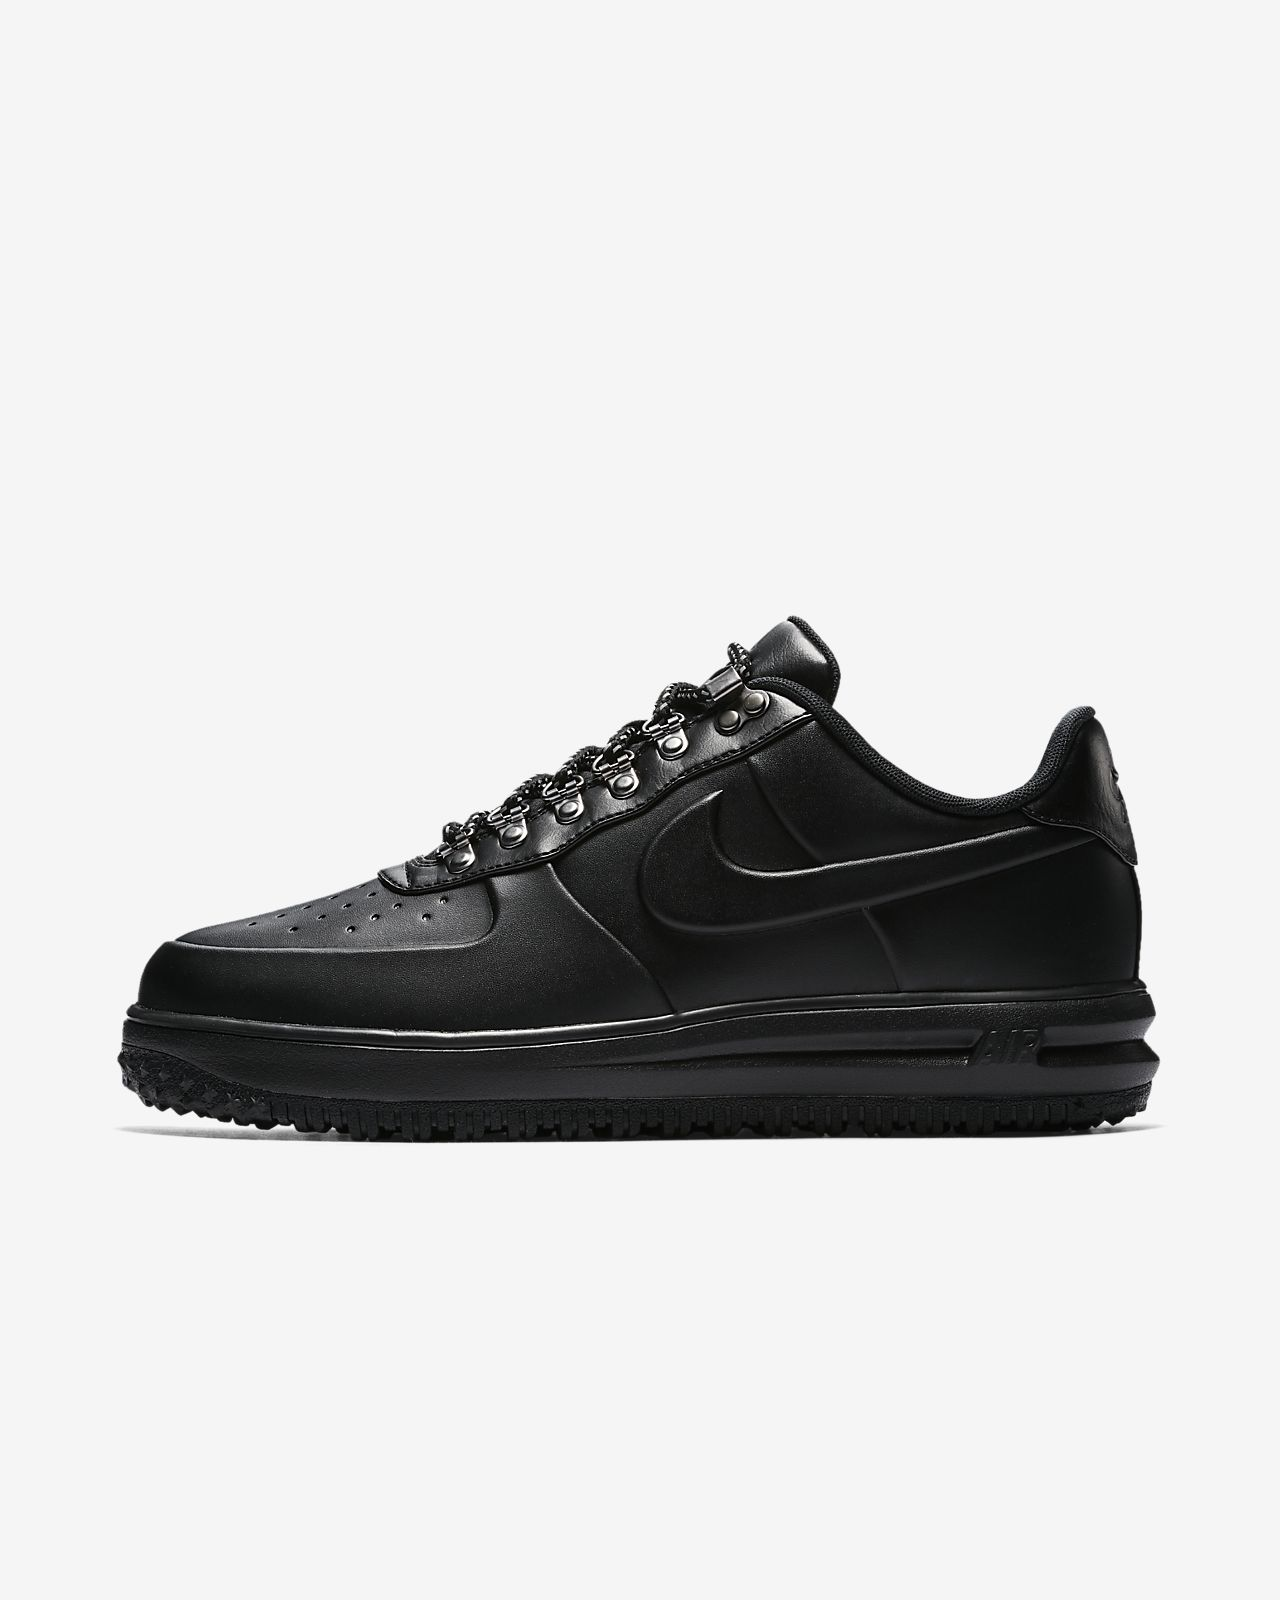 Nike Lunar Low-Top Sneakers cheap sale manchester great sale 1sUIBcYV7S